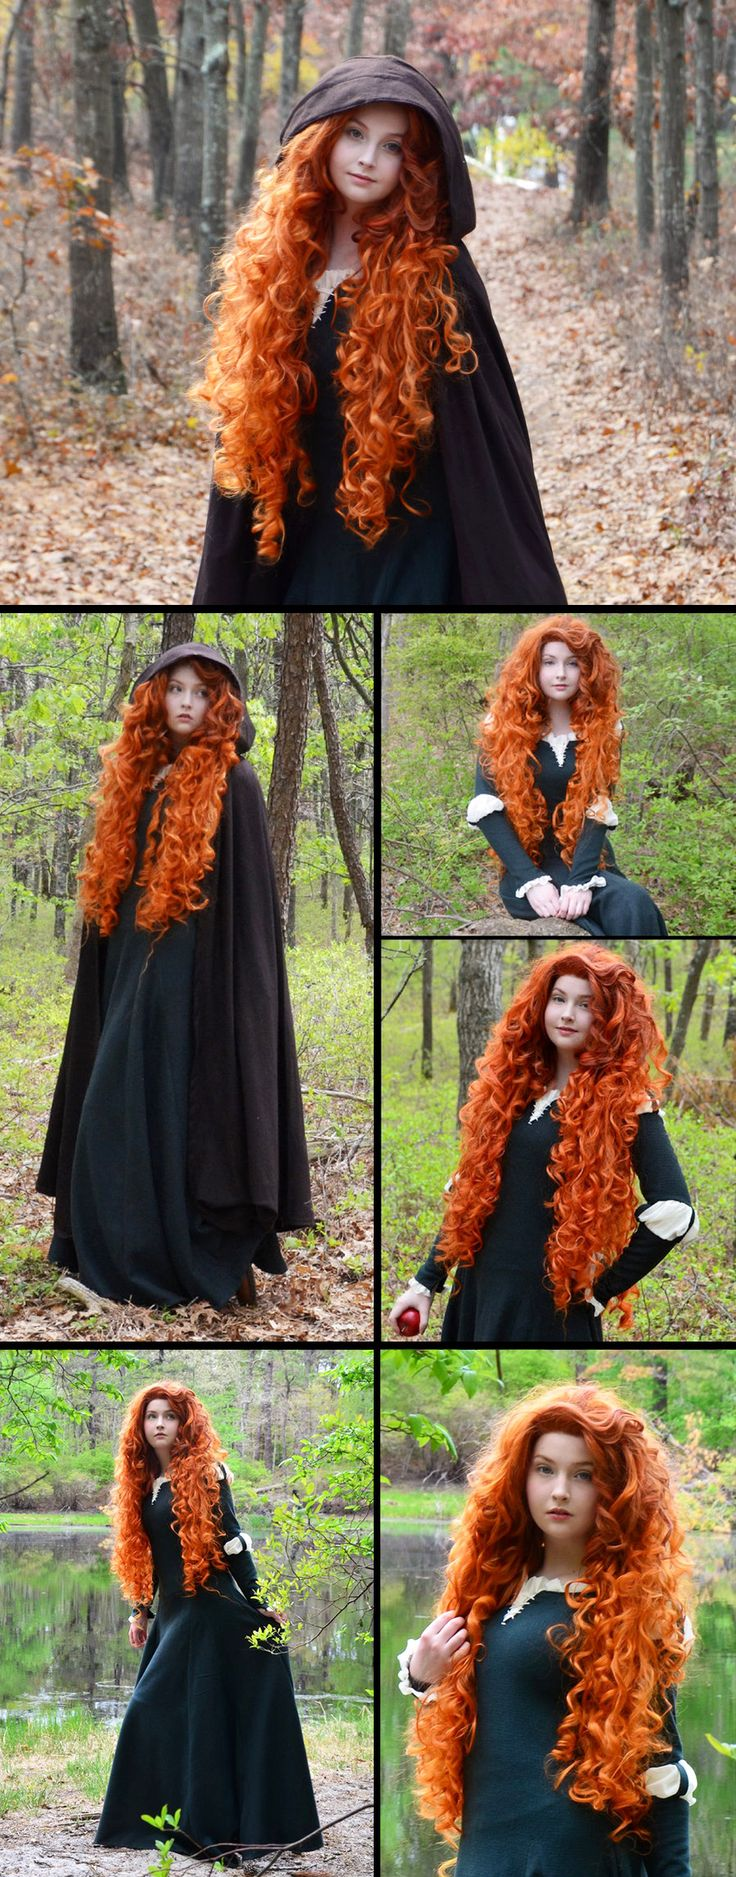 This is by far the best Merida cosplay I've ever seen.... Holy crap! She looks just like her! Check out the website to see more